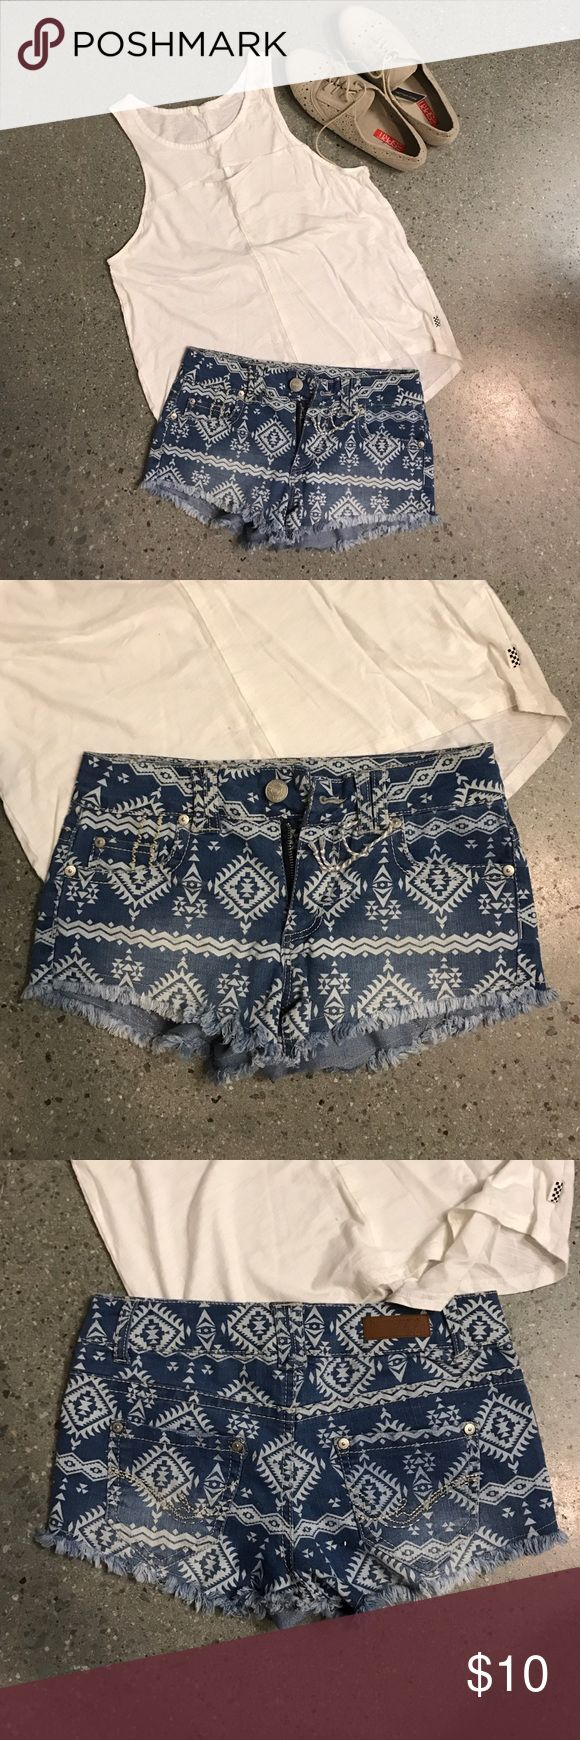 Tribal shorts Shorts with a printed Aztec pattern on them -- NWOT. These shorts are pretty short, but super cute for festivals! harmony and havoc Shorts Jean Shorts